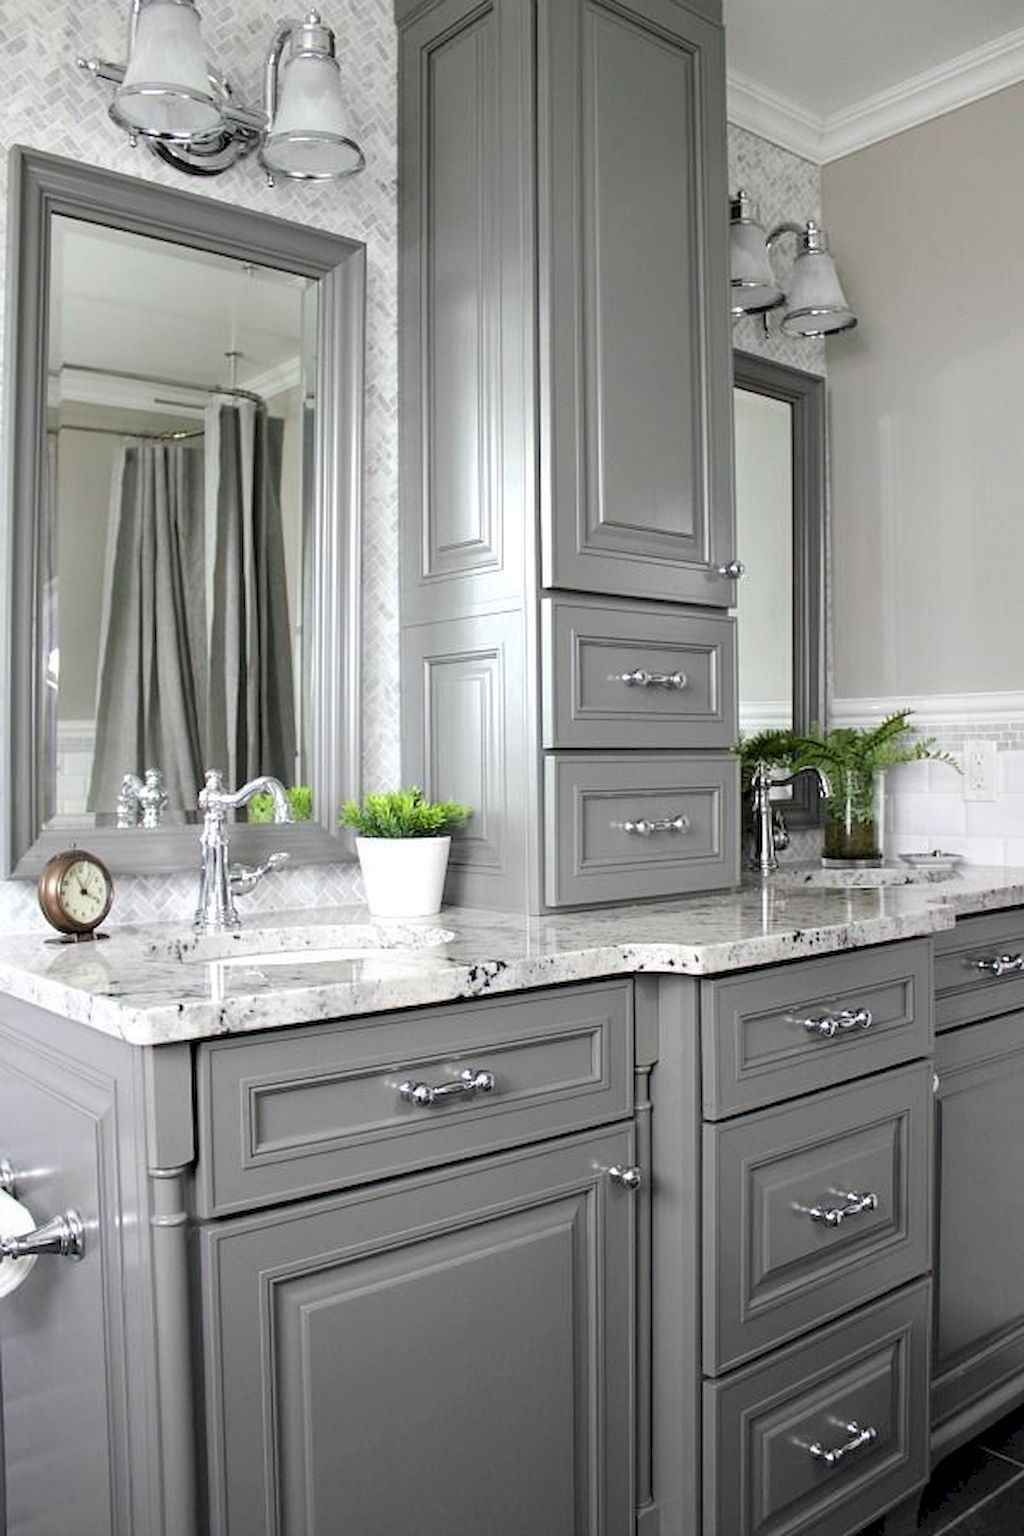 28 Beautiful Master Bathroom Remodel Ideas In 2020 Badezimmer Renovieren Kleines Badezimmer Umgestalten Traditionelle Bader